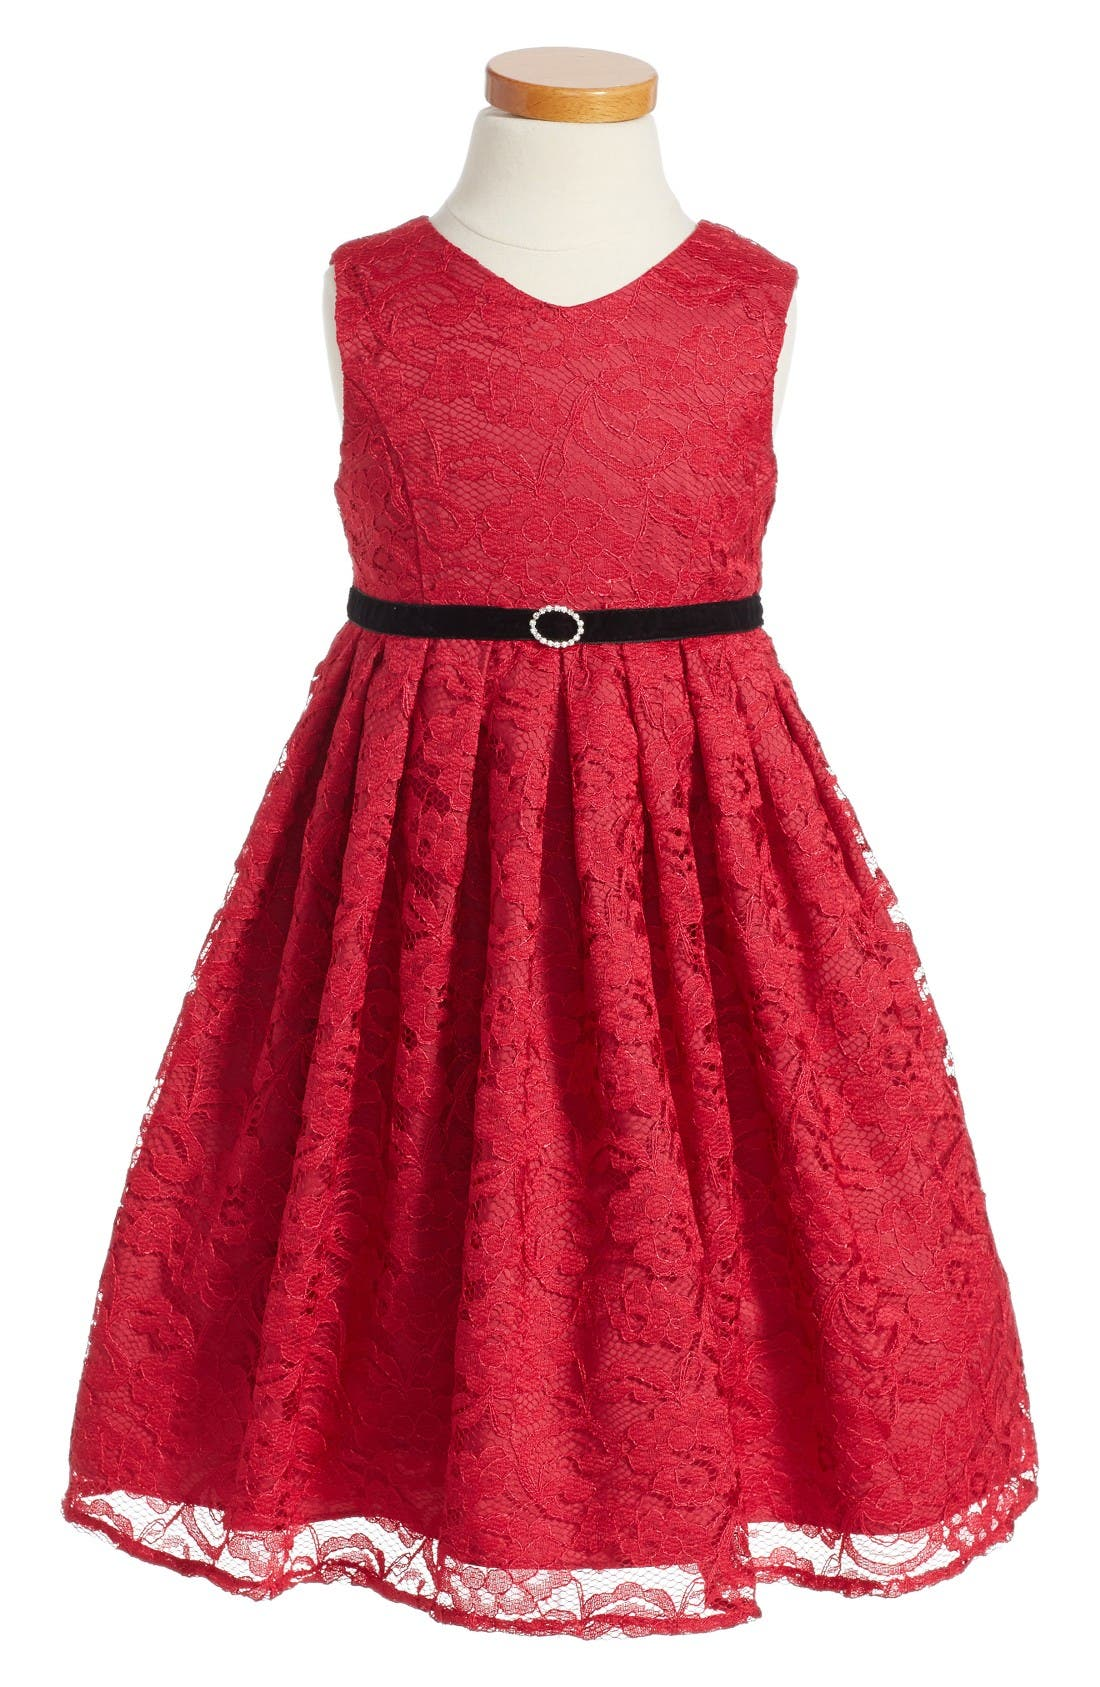 Alternate Image 1 Selected - Pippa & Julie Lace Empire Waist Dress (Toddler Girls, Little Girls and Big Girls)